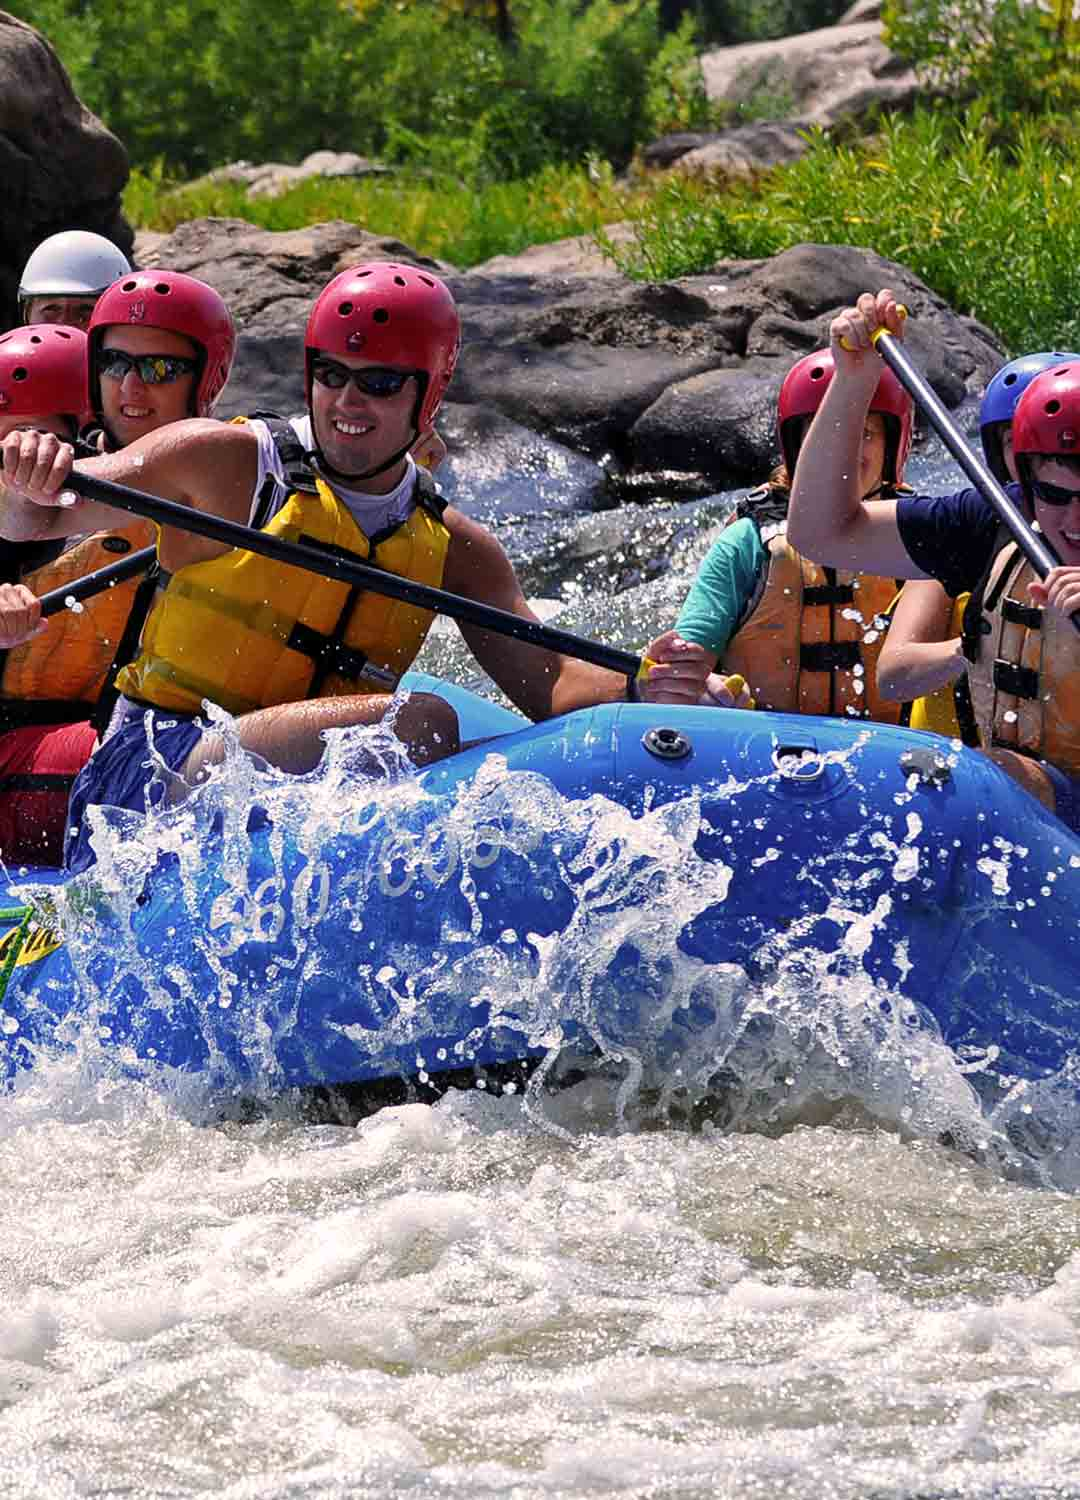 Whitewater Rafting, Paddleboarding, Youth Camps, Canoe/Kayak